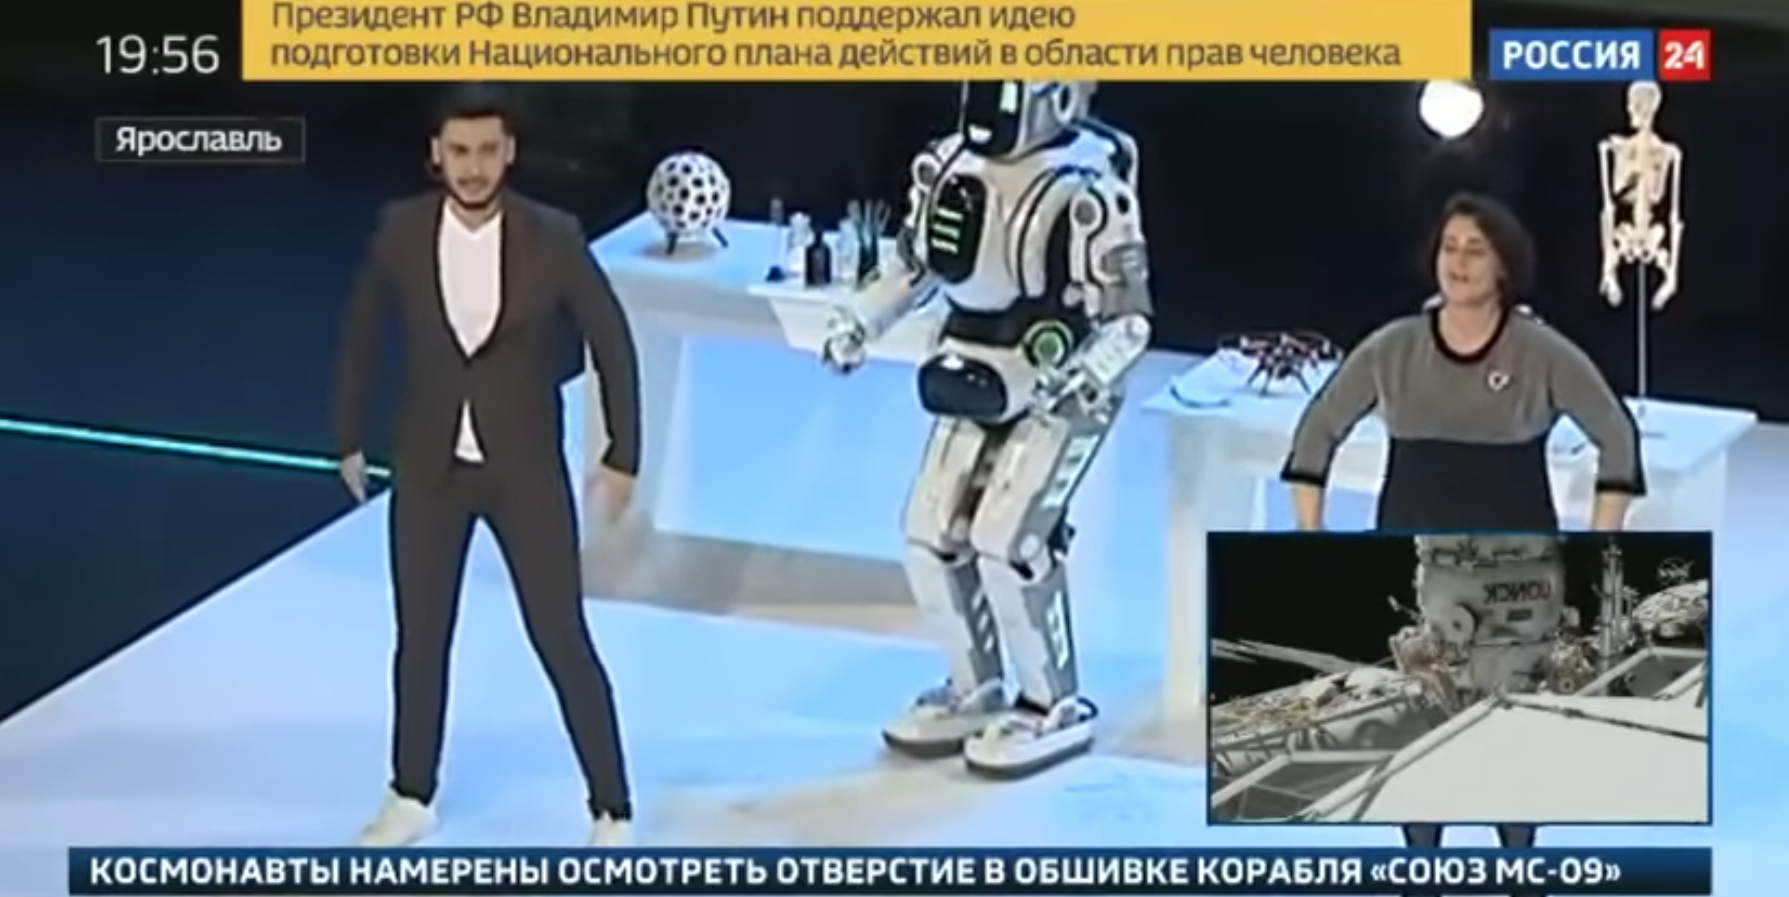 Dancing Robot at Russian Event Turns Out to Be a Man in a Costume